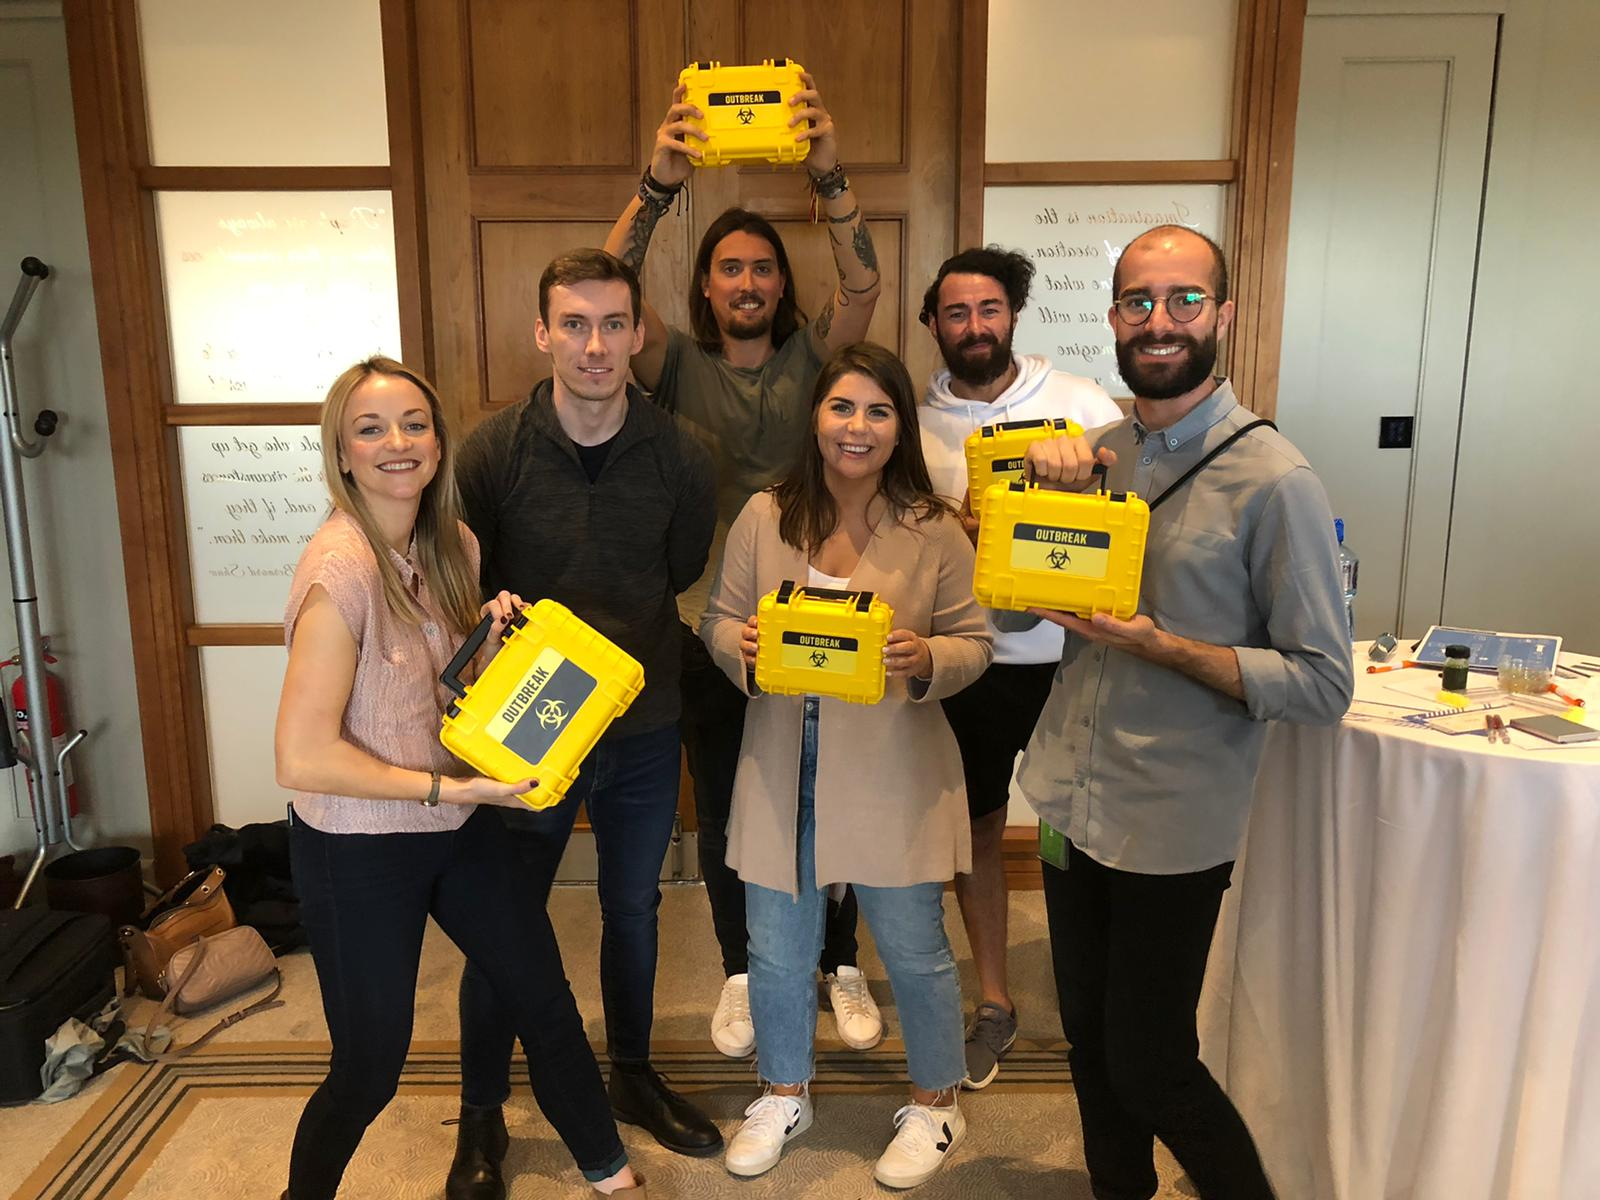 Delegates holding their Outbreak boxes as they have just finished their team building activities with Orangeworks.